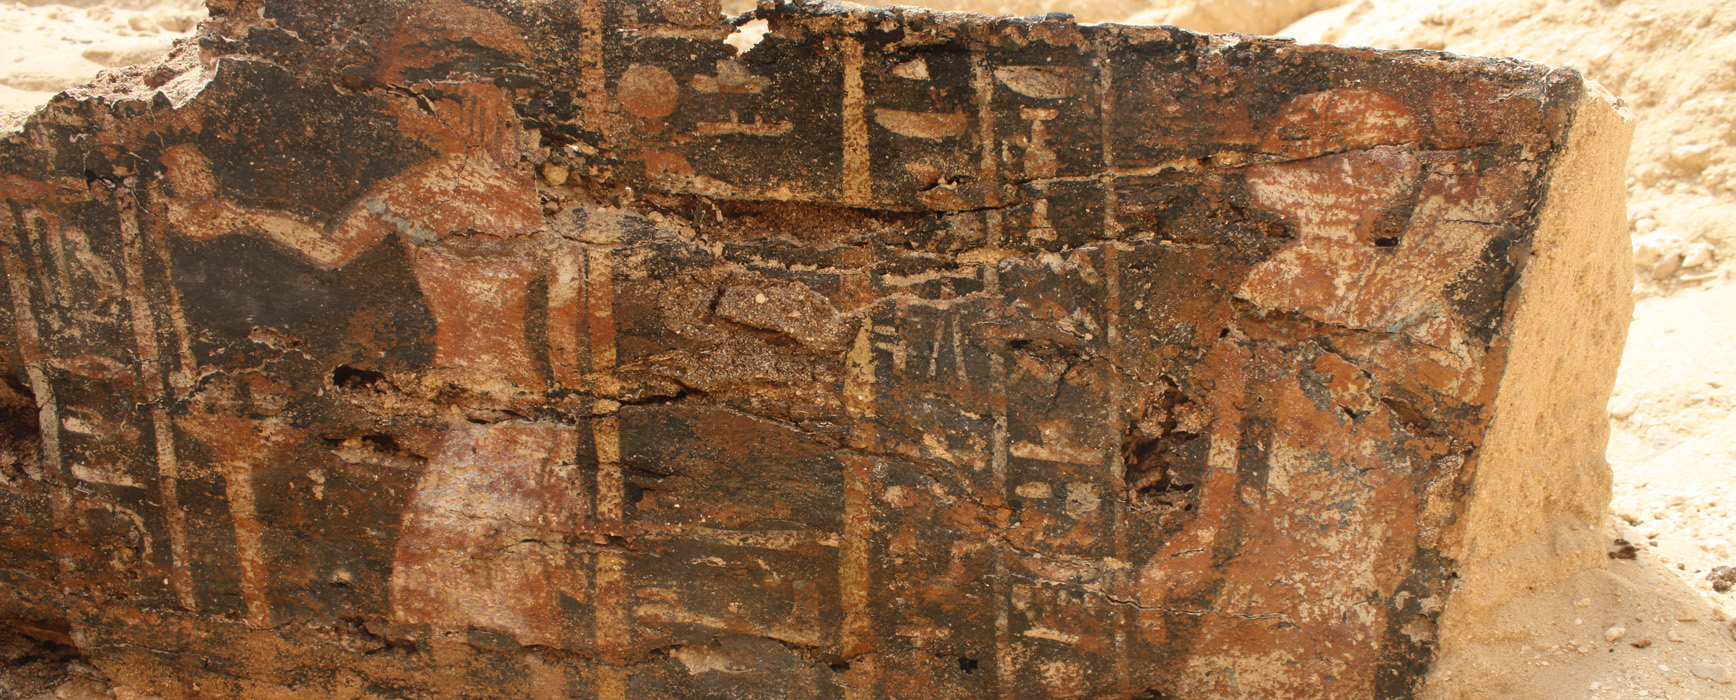 A coffin recently excavated at Amarna by the Amarna            Project